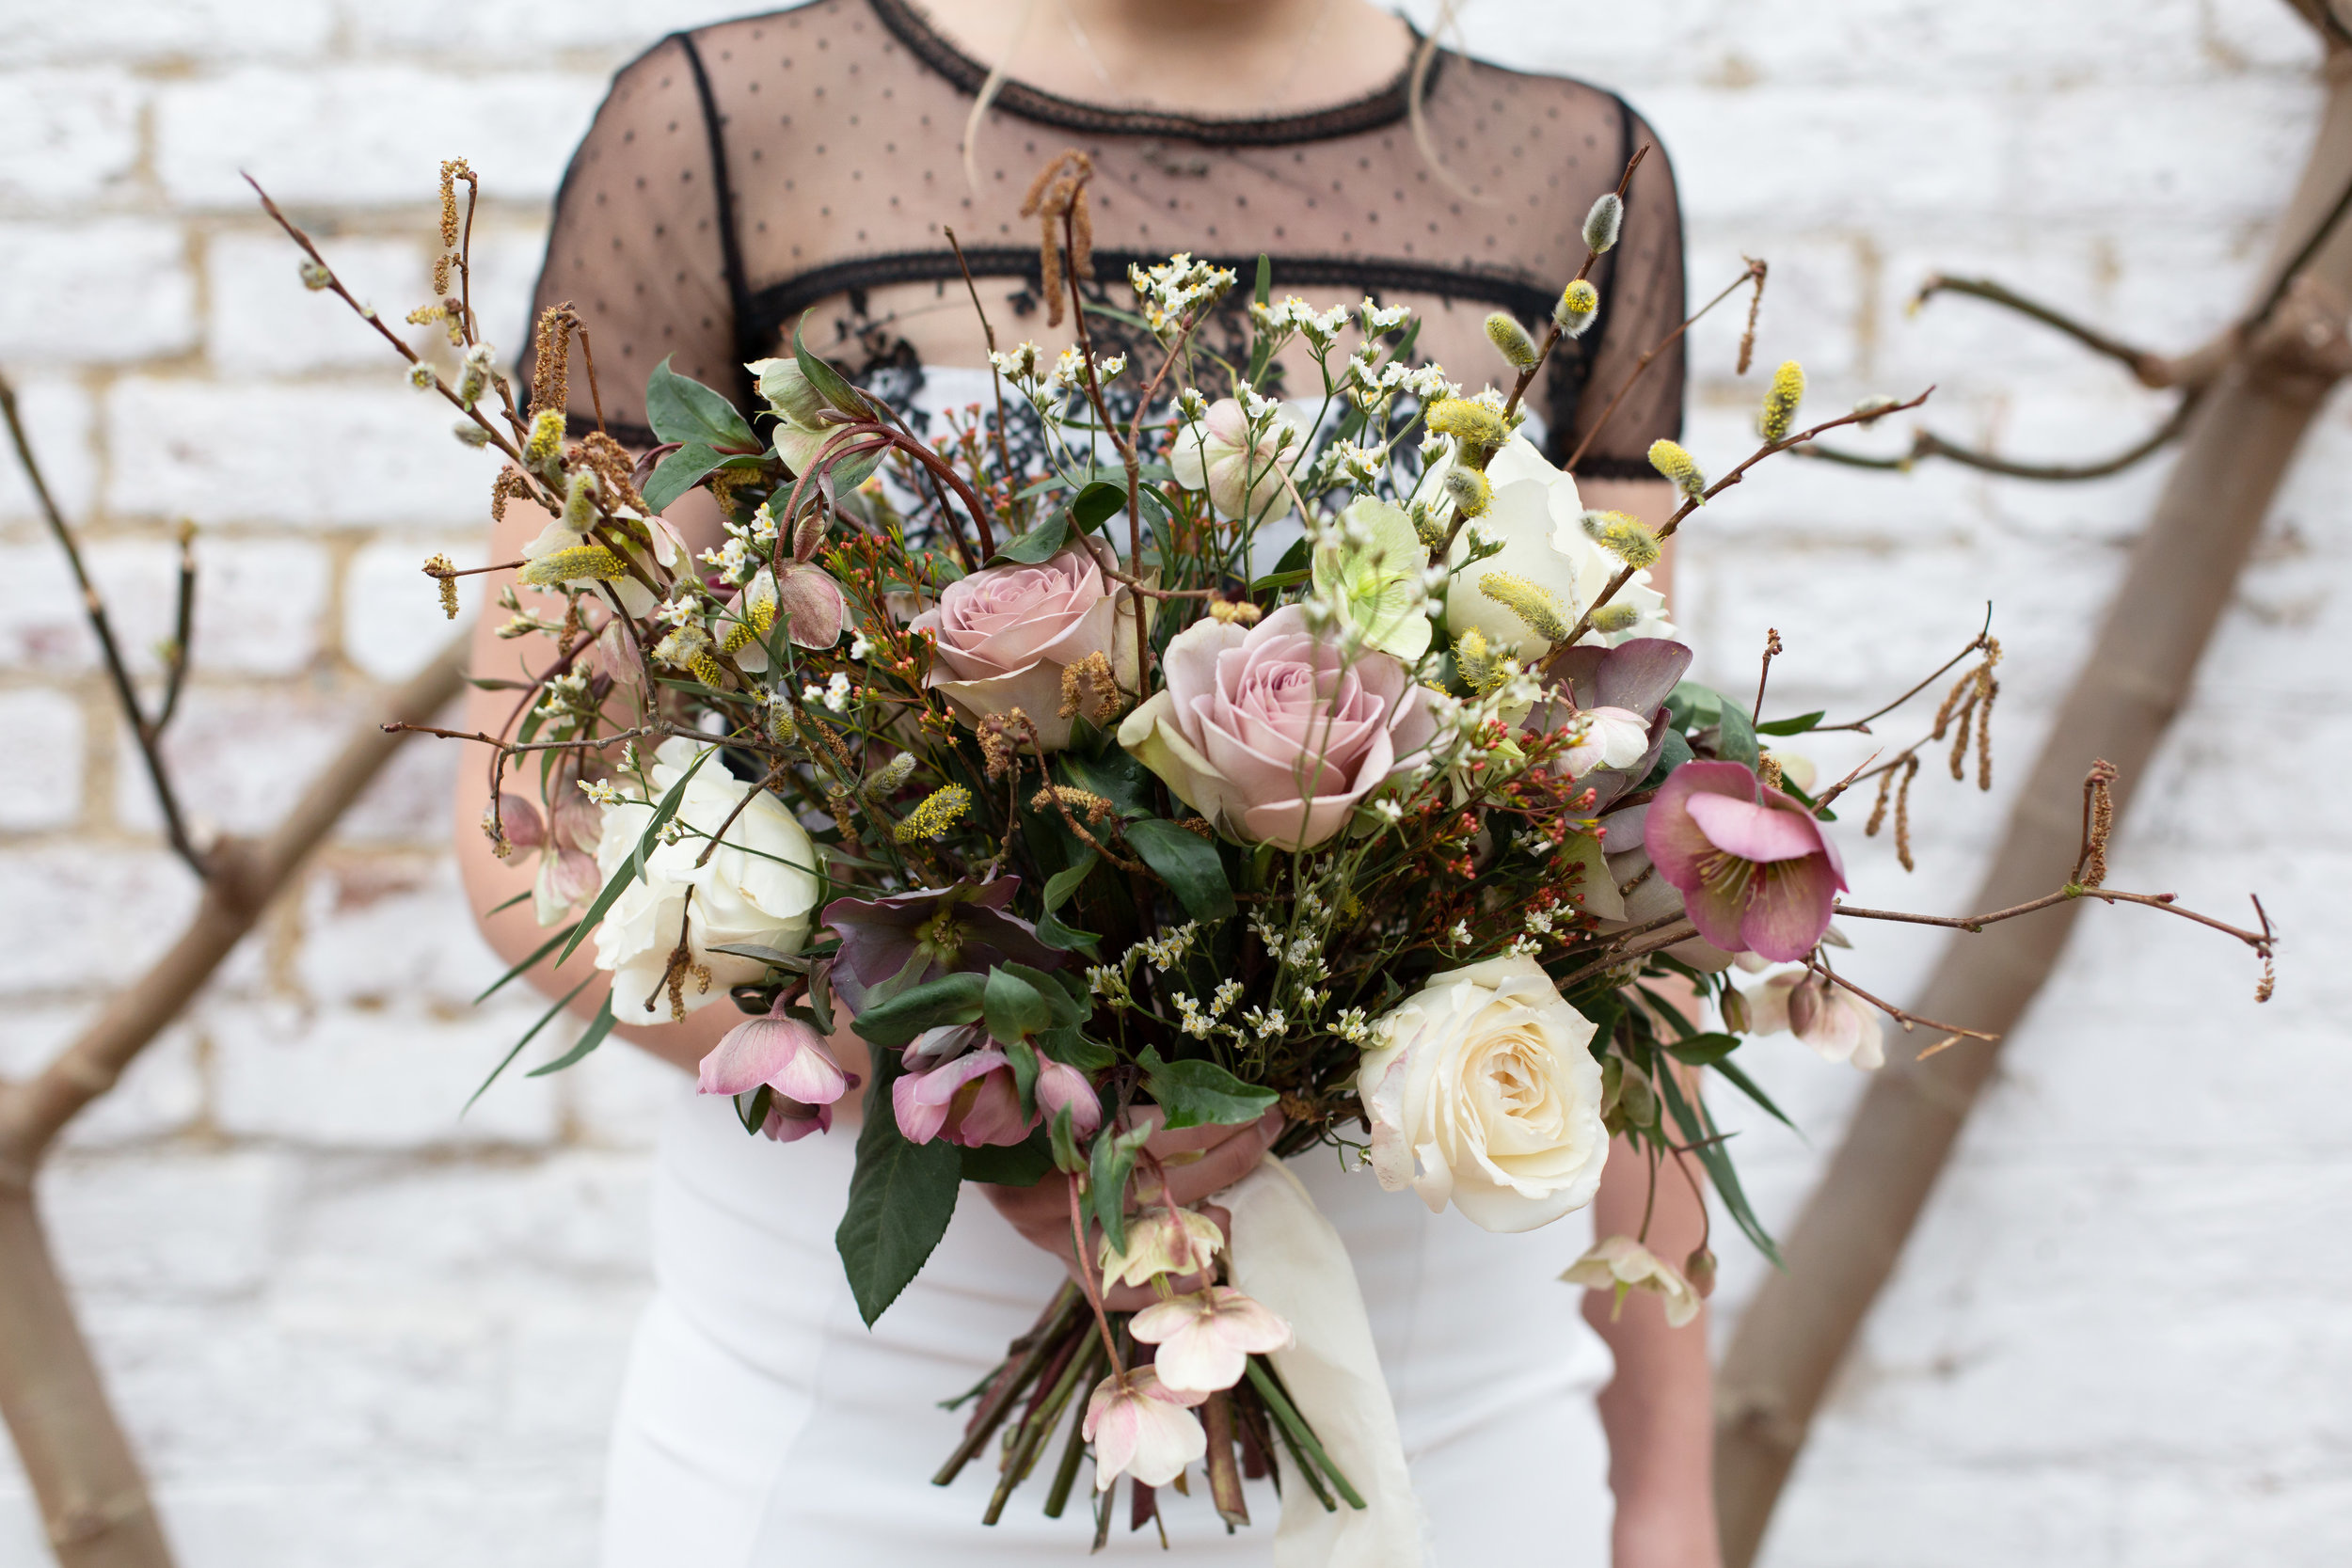 Smokebush Floral - Min is calm, collected and talented. Here is a pic recent Conscious Bride wedding she did! Using local and British grown flowers including those she grows herself!